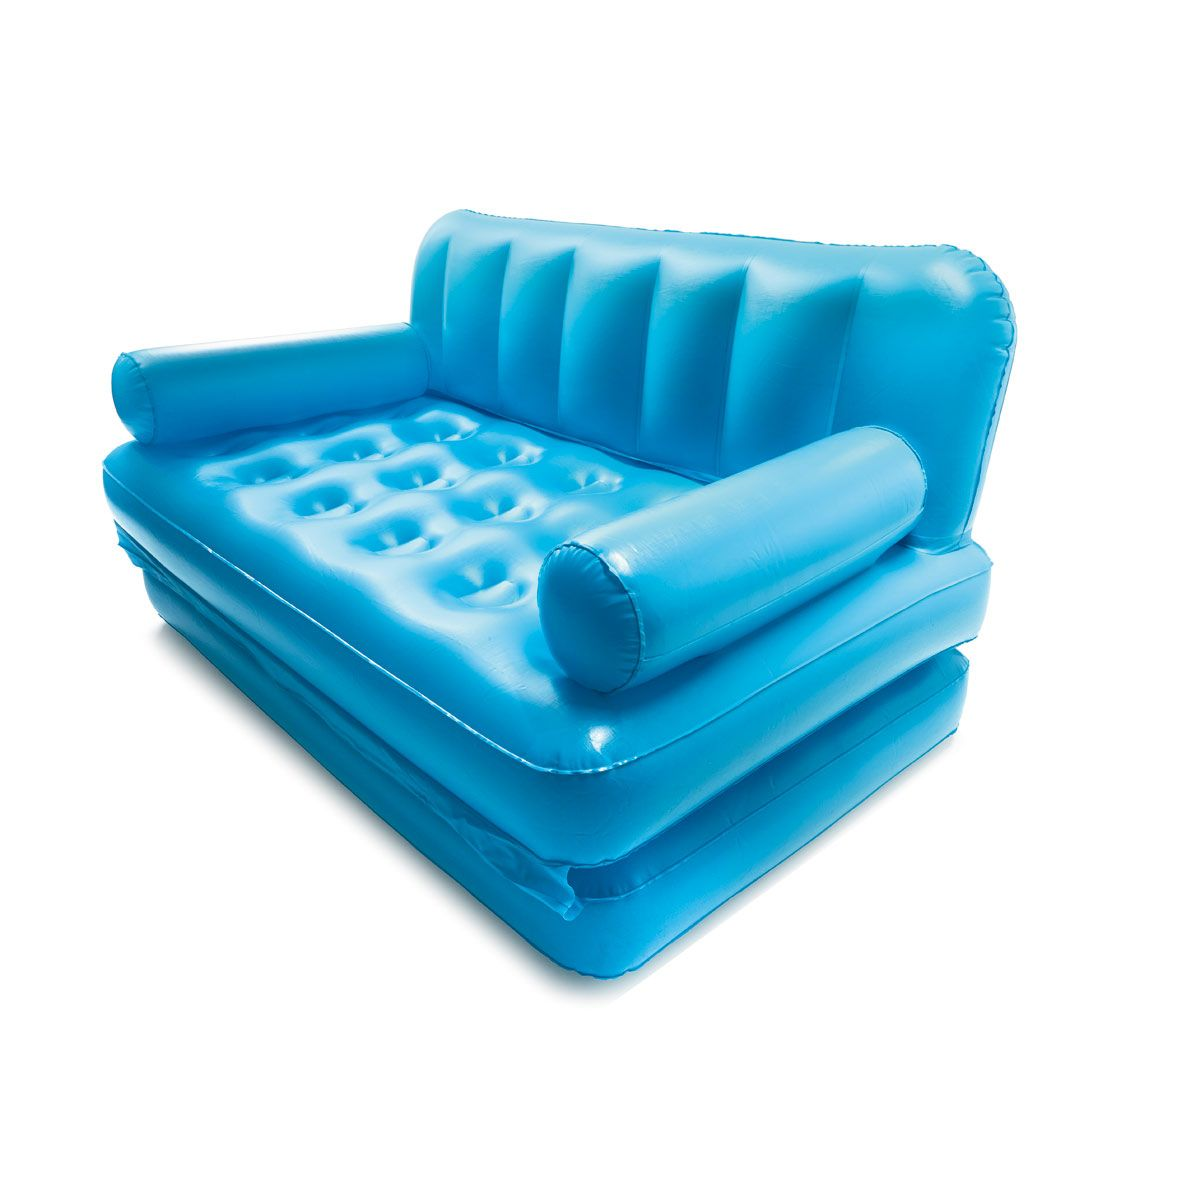 Multi Function Couch Double Bed Blue Kmart Inflatable Sofa